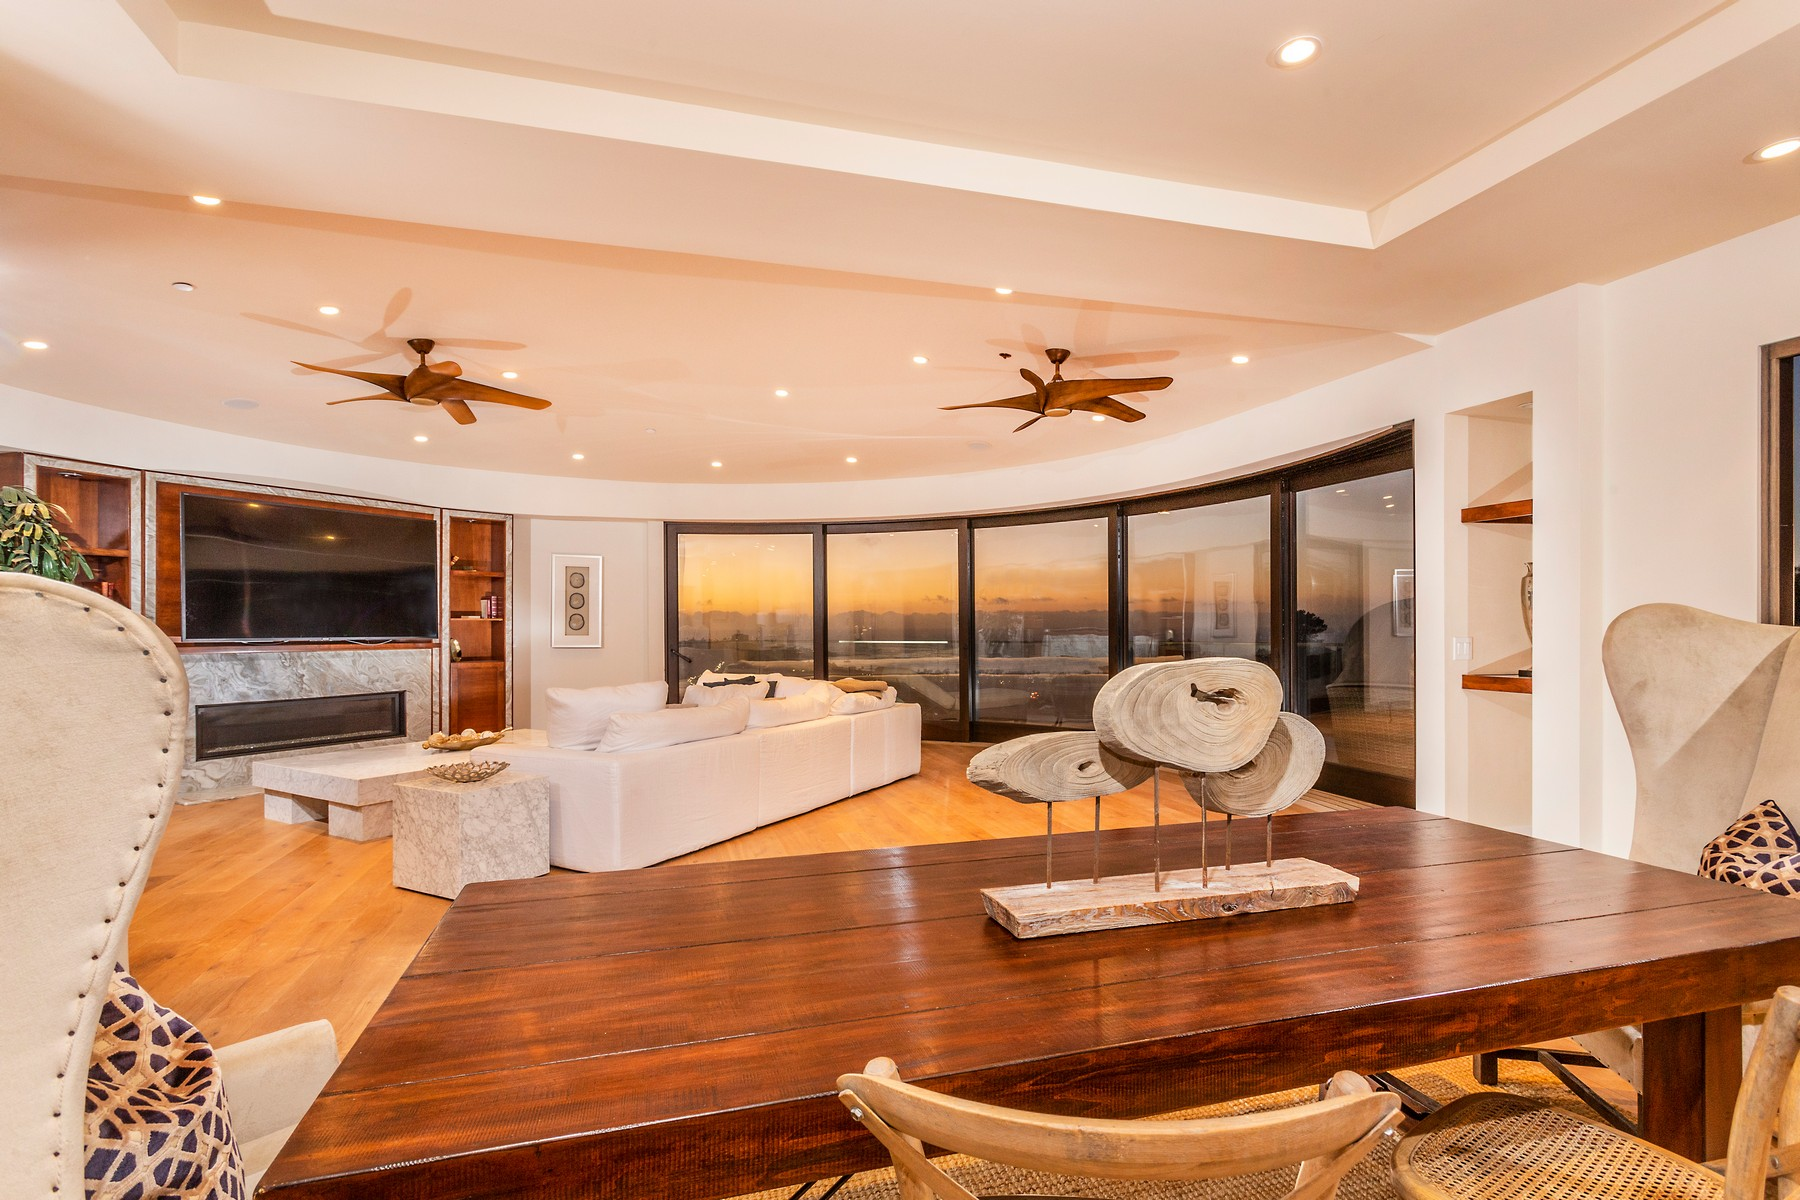 Single Family Homes for Active at 7940 Costebelle Way, La Jolla, CA 92037 7940 Costebelle Way La Jolla, California 92037 United States